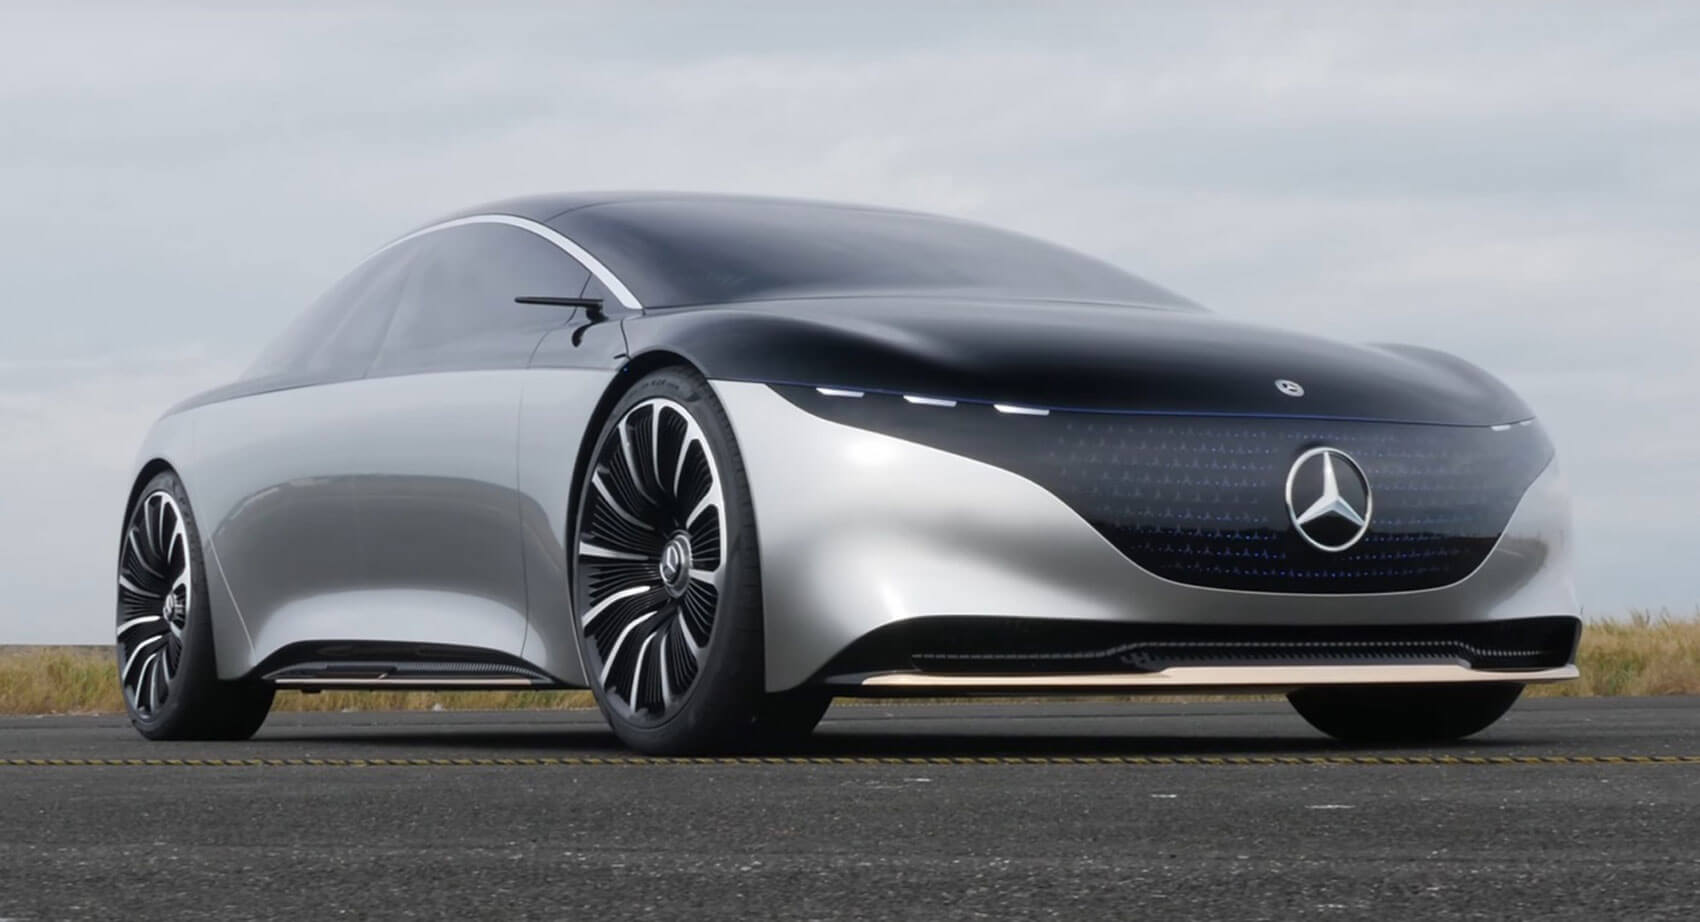 Driving The Mercedes-Benz Vision EQS Concept Feels Like ...